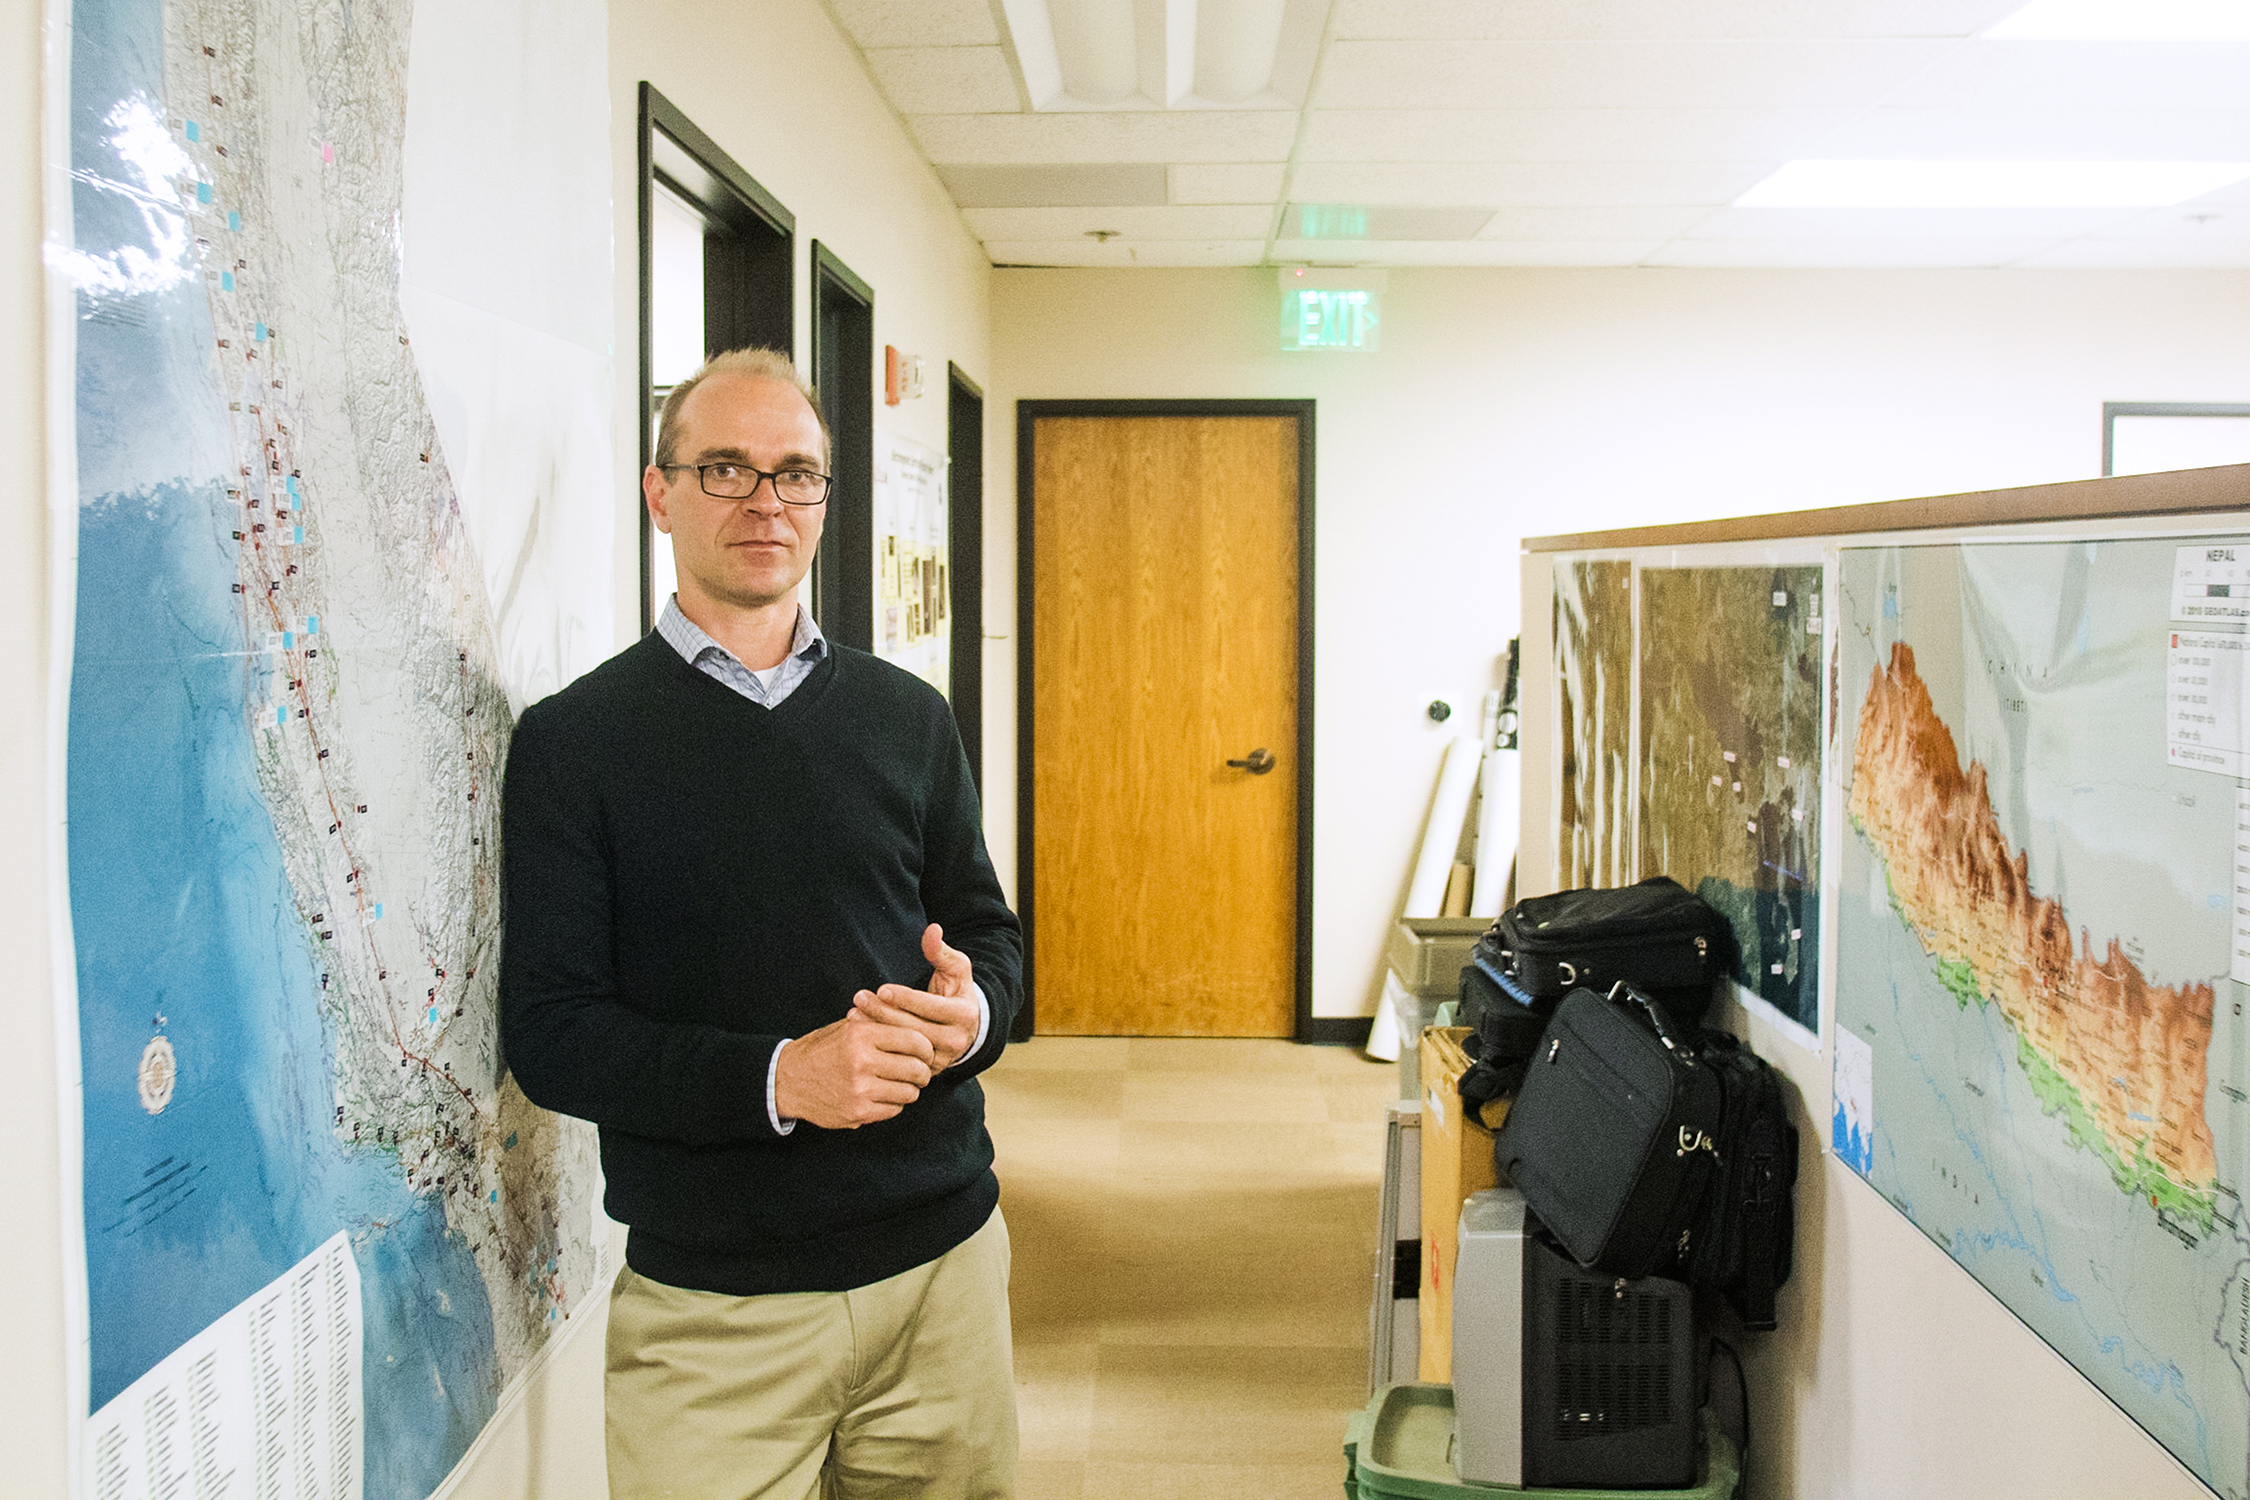 Dan Coughlin, director of Quake Finder, stands next to a map of California showing the locations of some of the company's 170 earthquake sensors which measure electromagnetic changes.